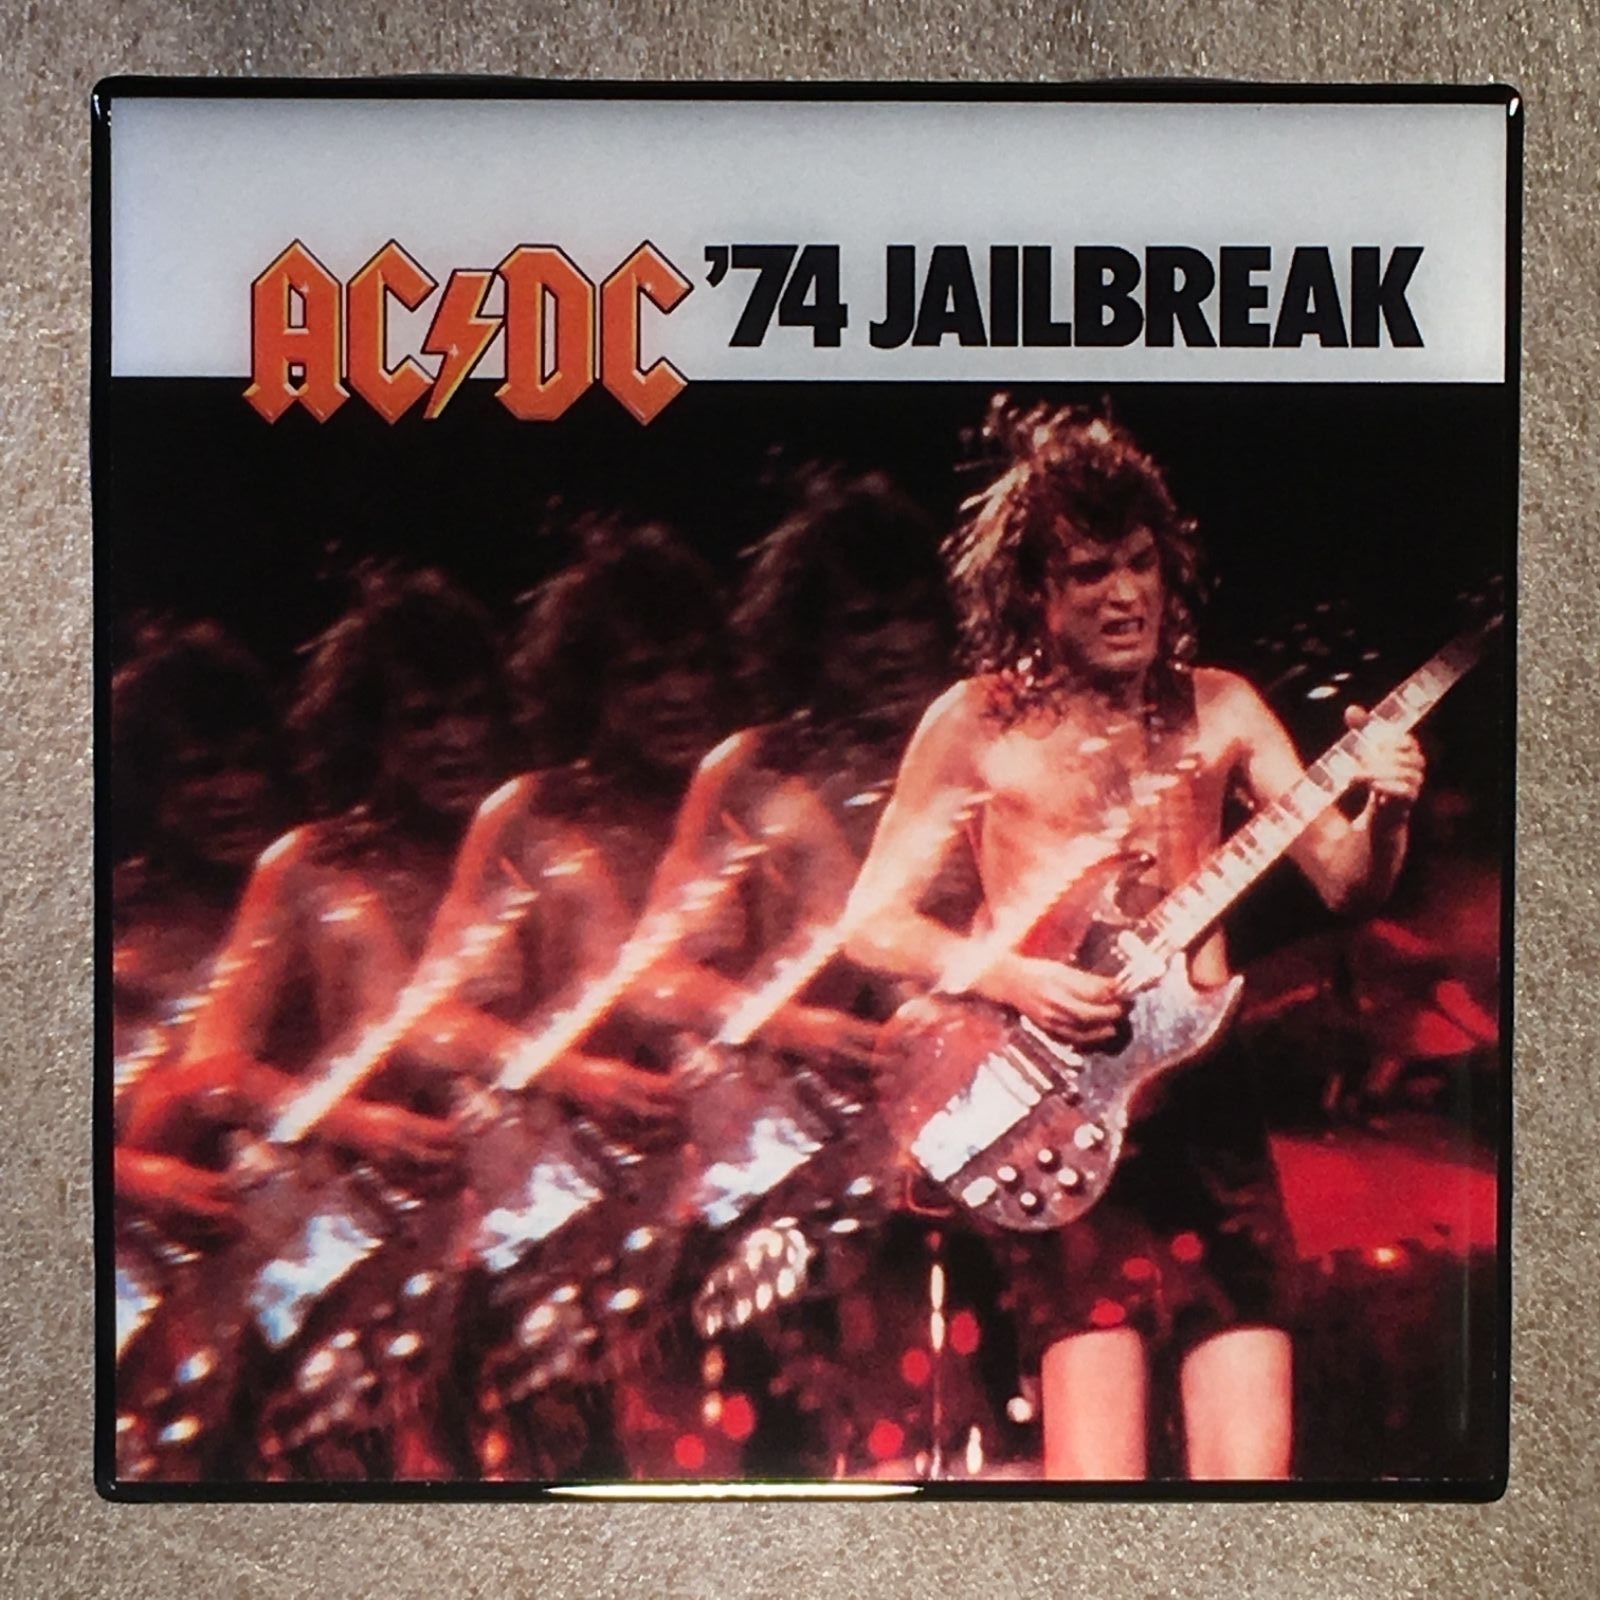 Acdc 74 Jailbreak Coaster Record Cover Ceramic Tile Ac Dc And